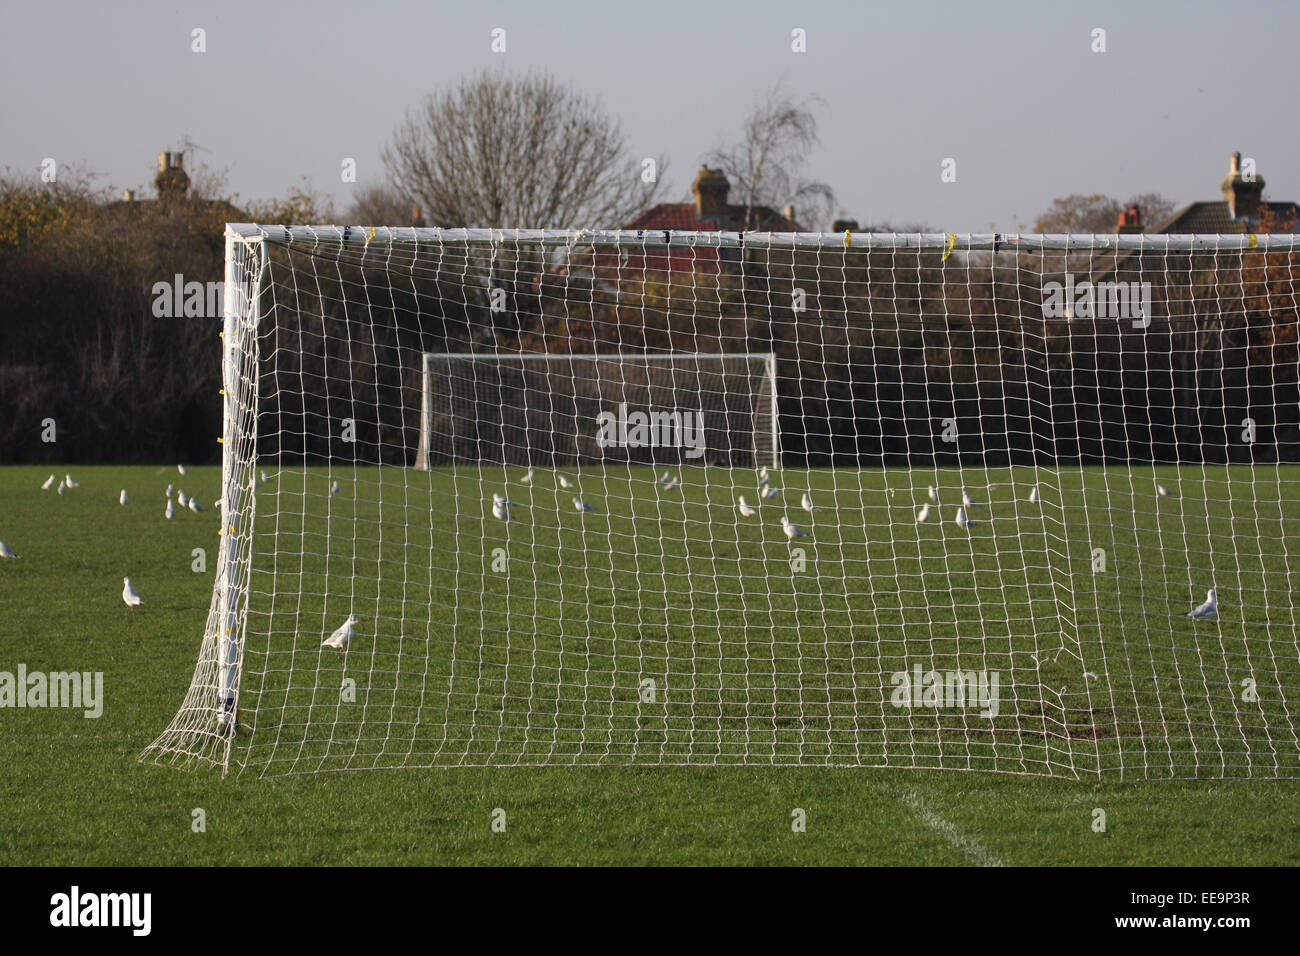 GOAL FOOTBALL PITCH - Stock Image